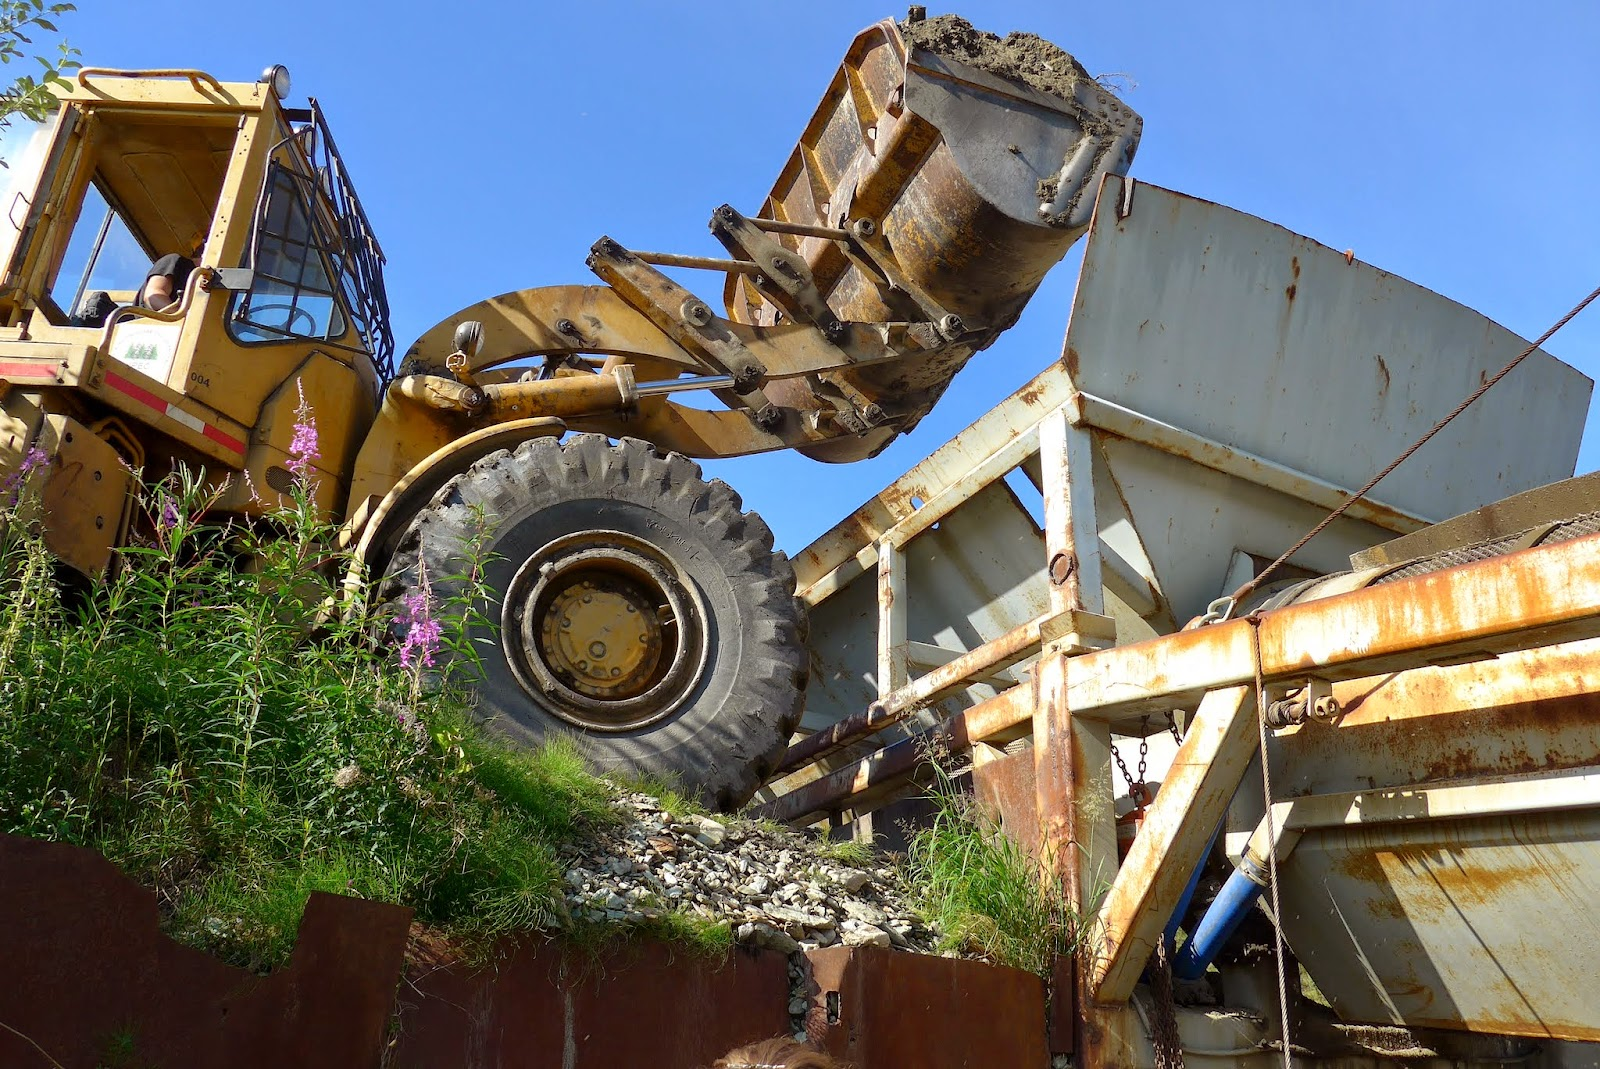 Large front loader dumping dirt into the large sluice.